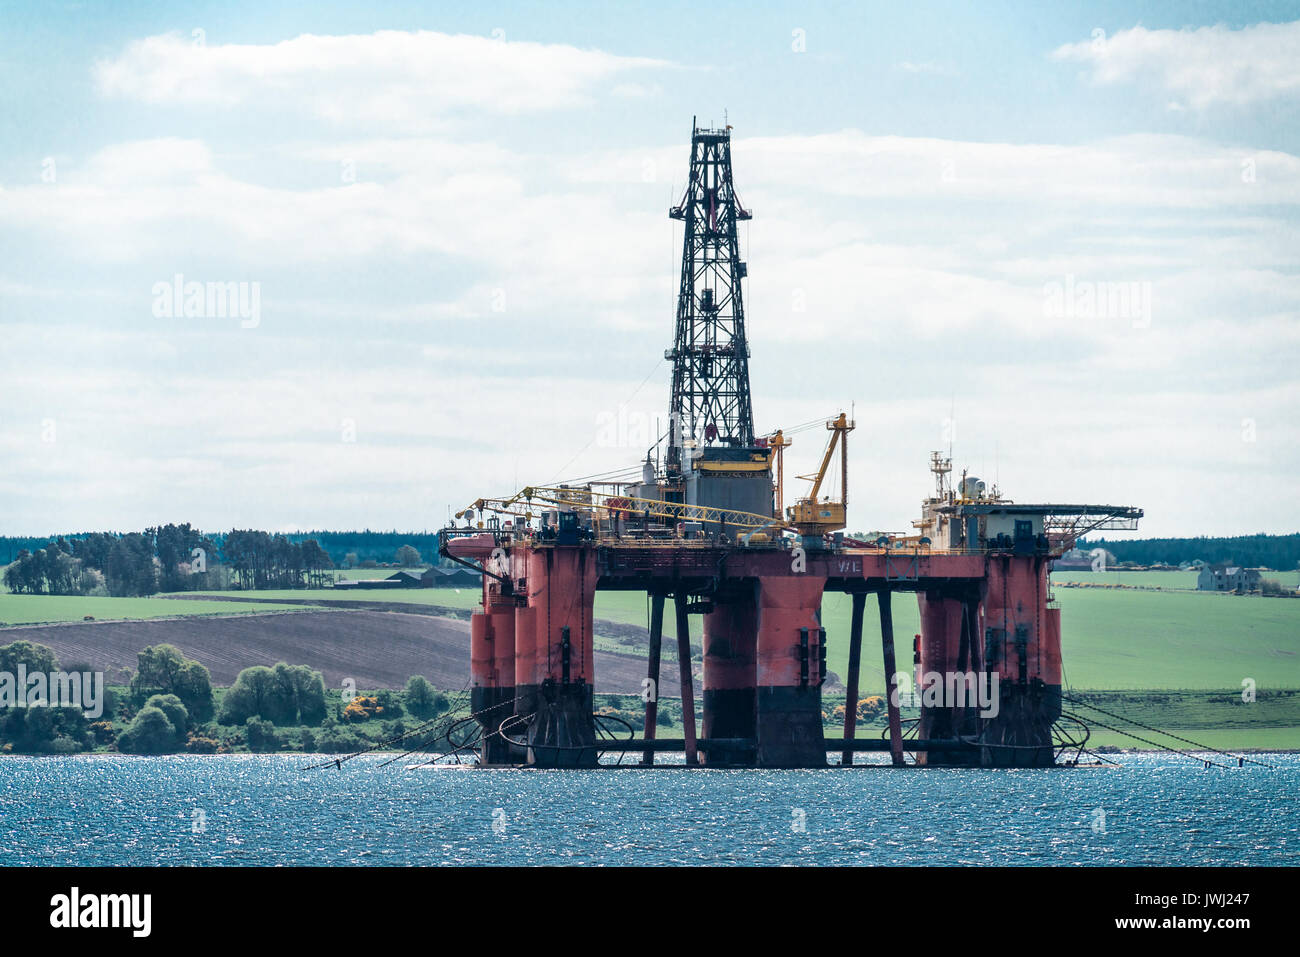 Disused North Sea oil drilling rig moored in the Cromarty Firth, Scotland Stock Photo